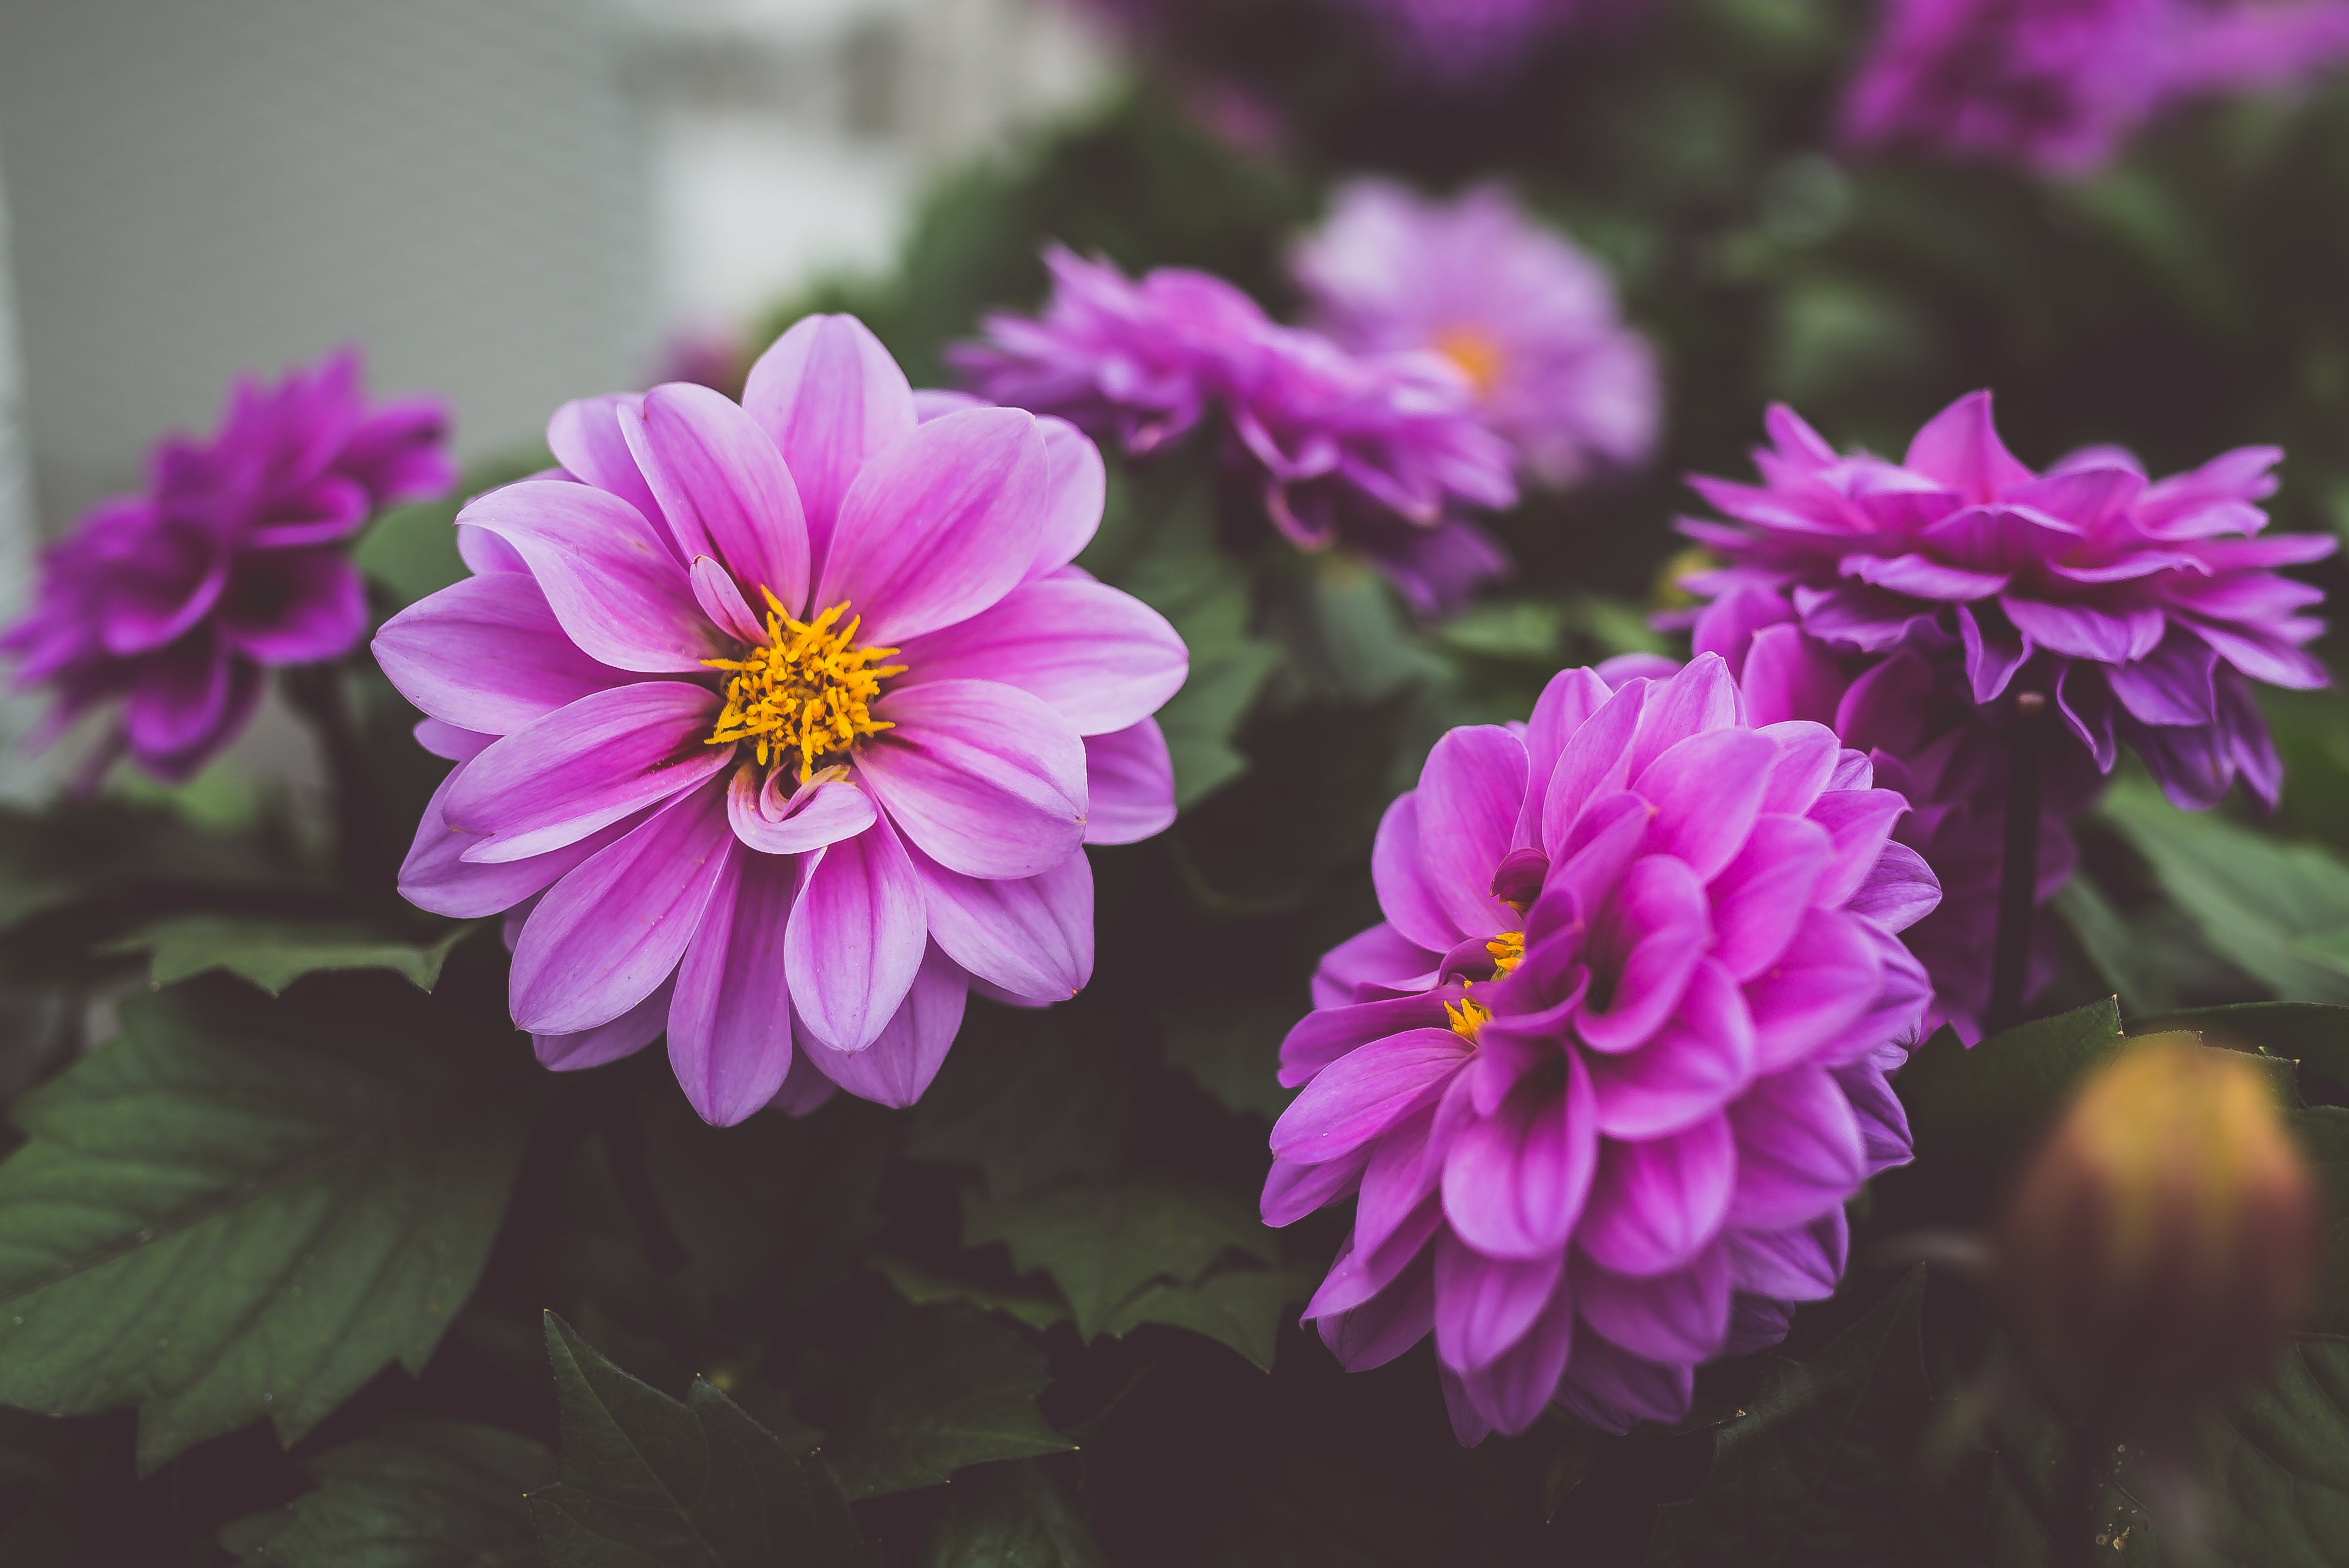 Free stock photo of nature, flowers, garden, petals